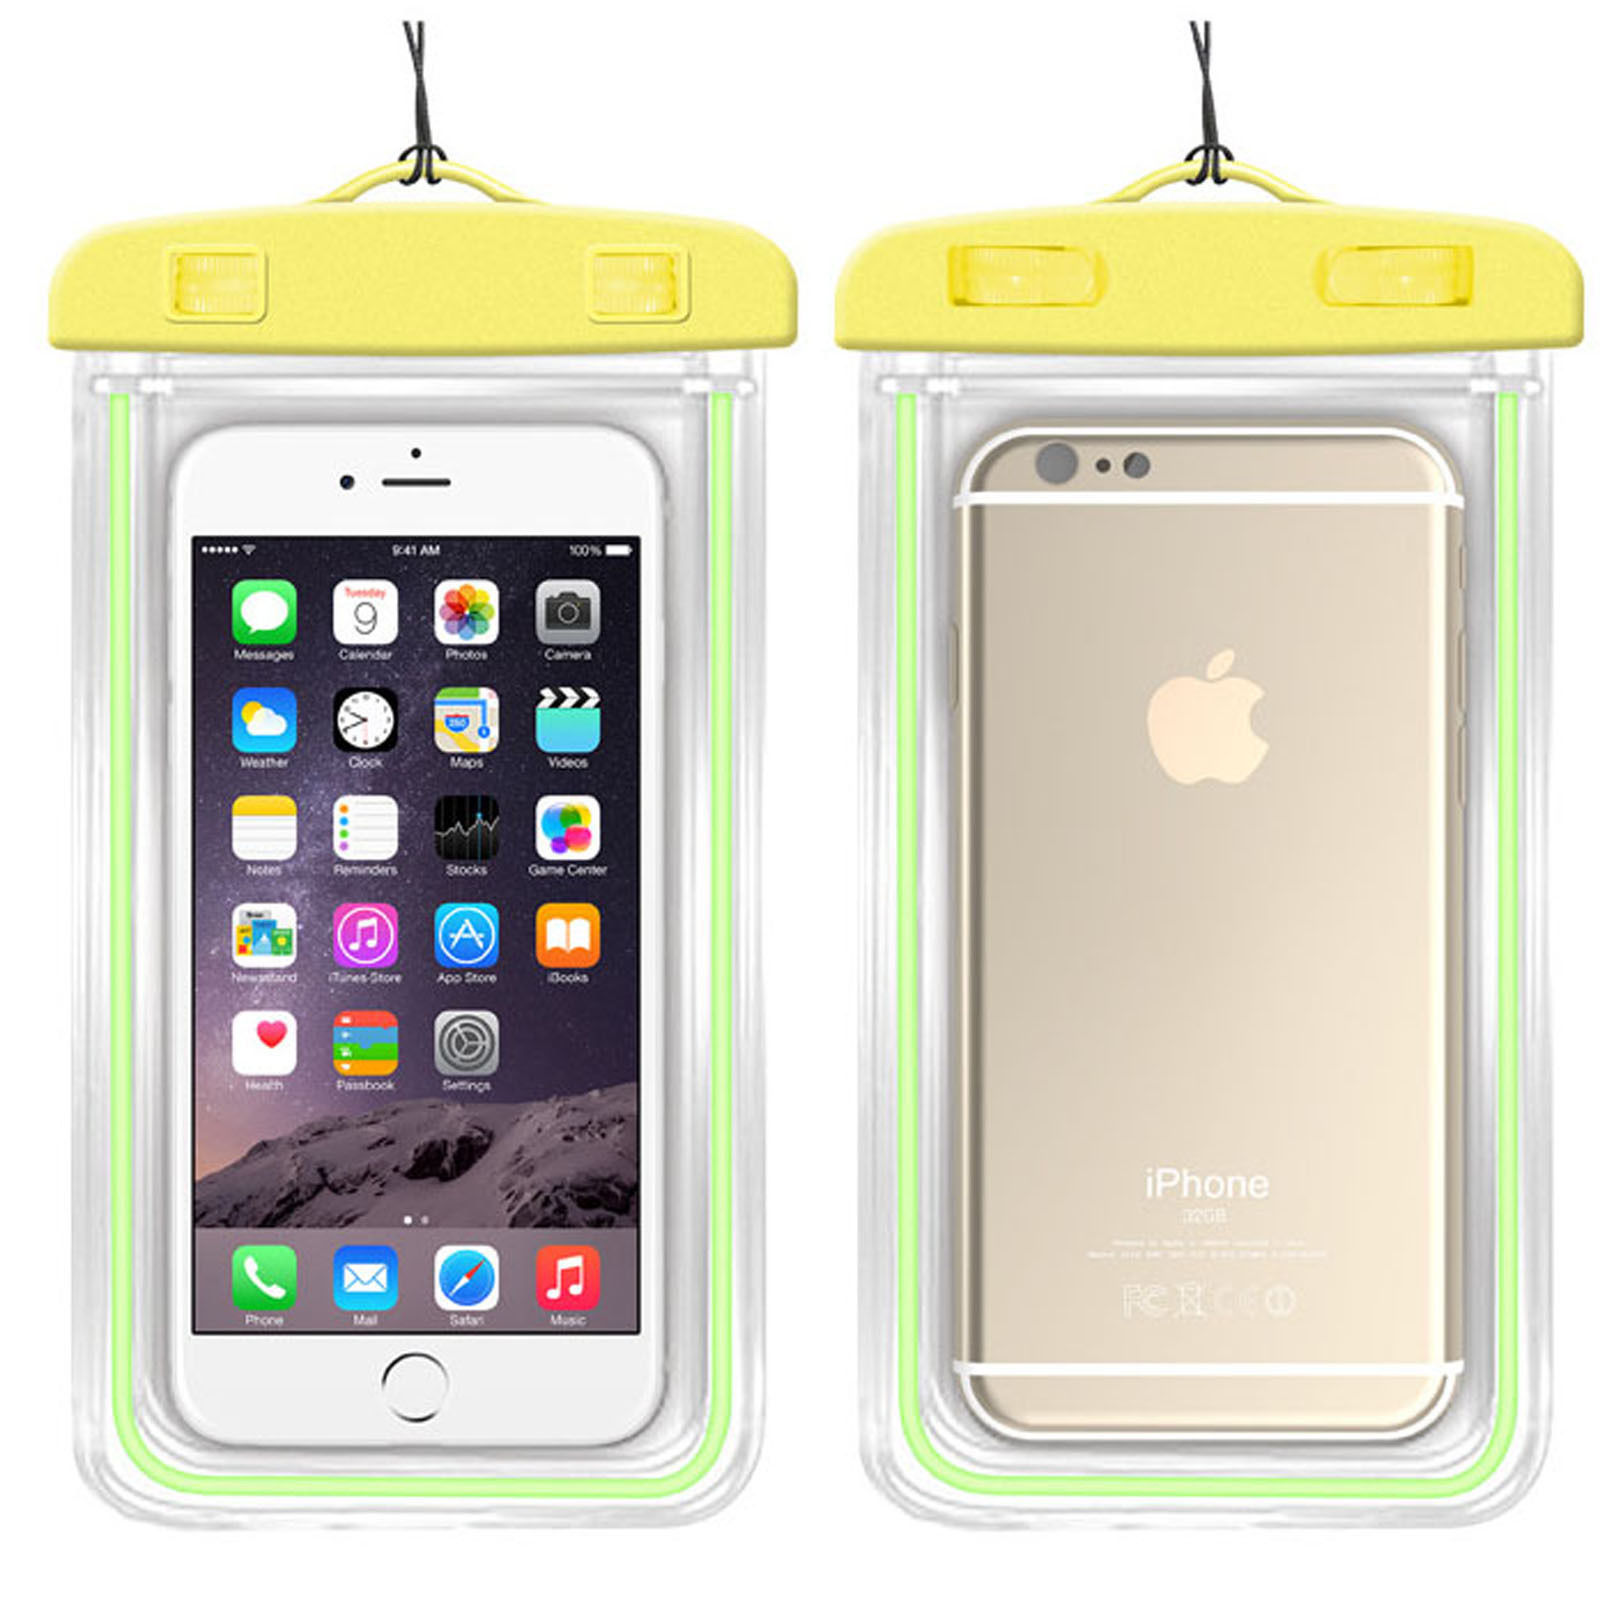 Waterproof phone case for iphone 6s, universal transparent PVC waterproof mobile phone case with armband for iphone 7 6 Plus samsung S8